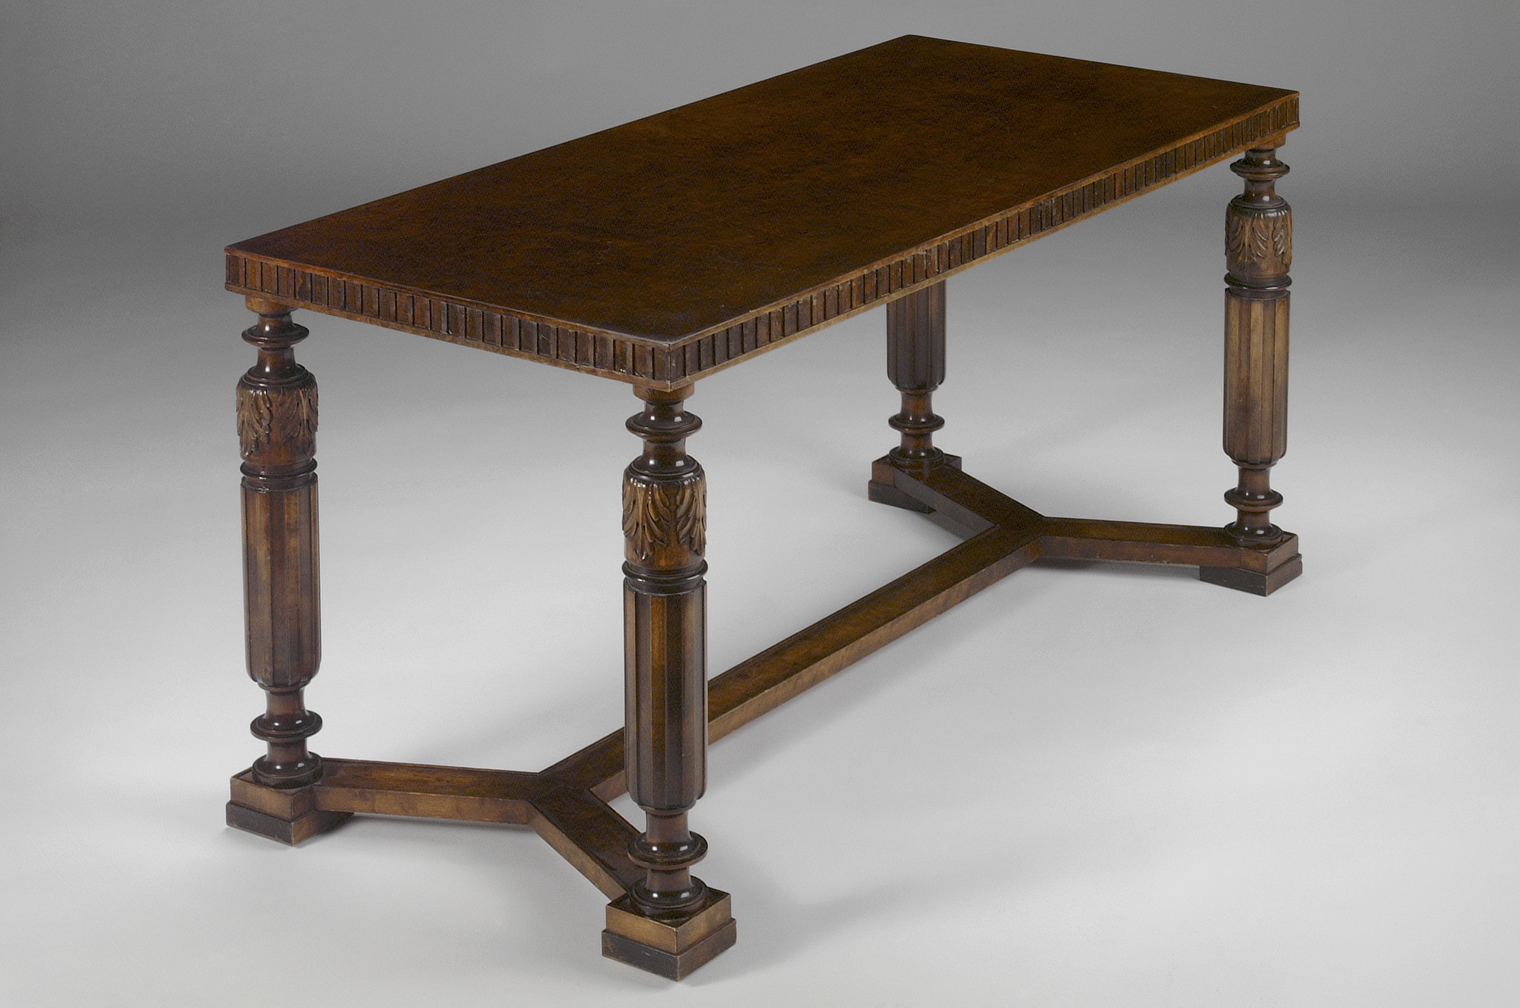 Neoclassical consol table